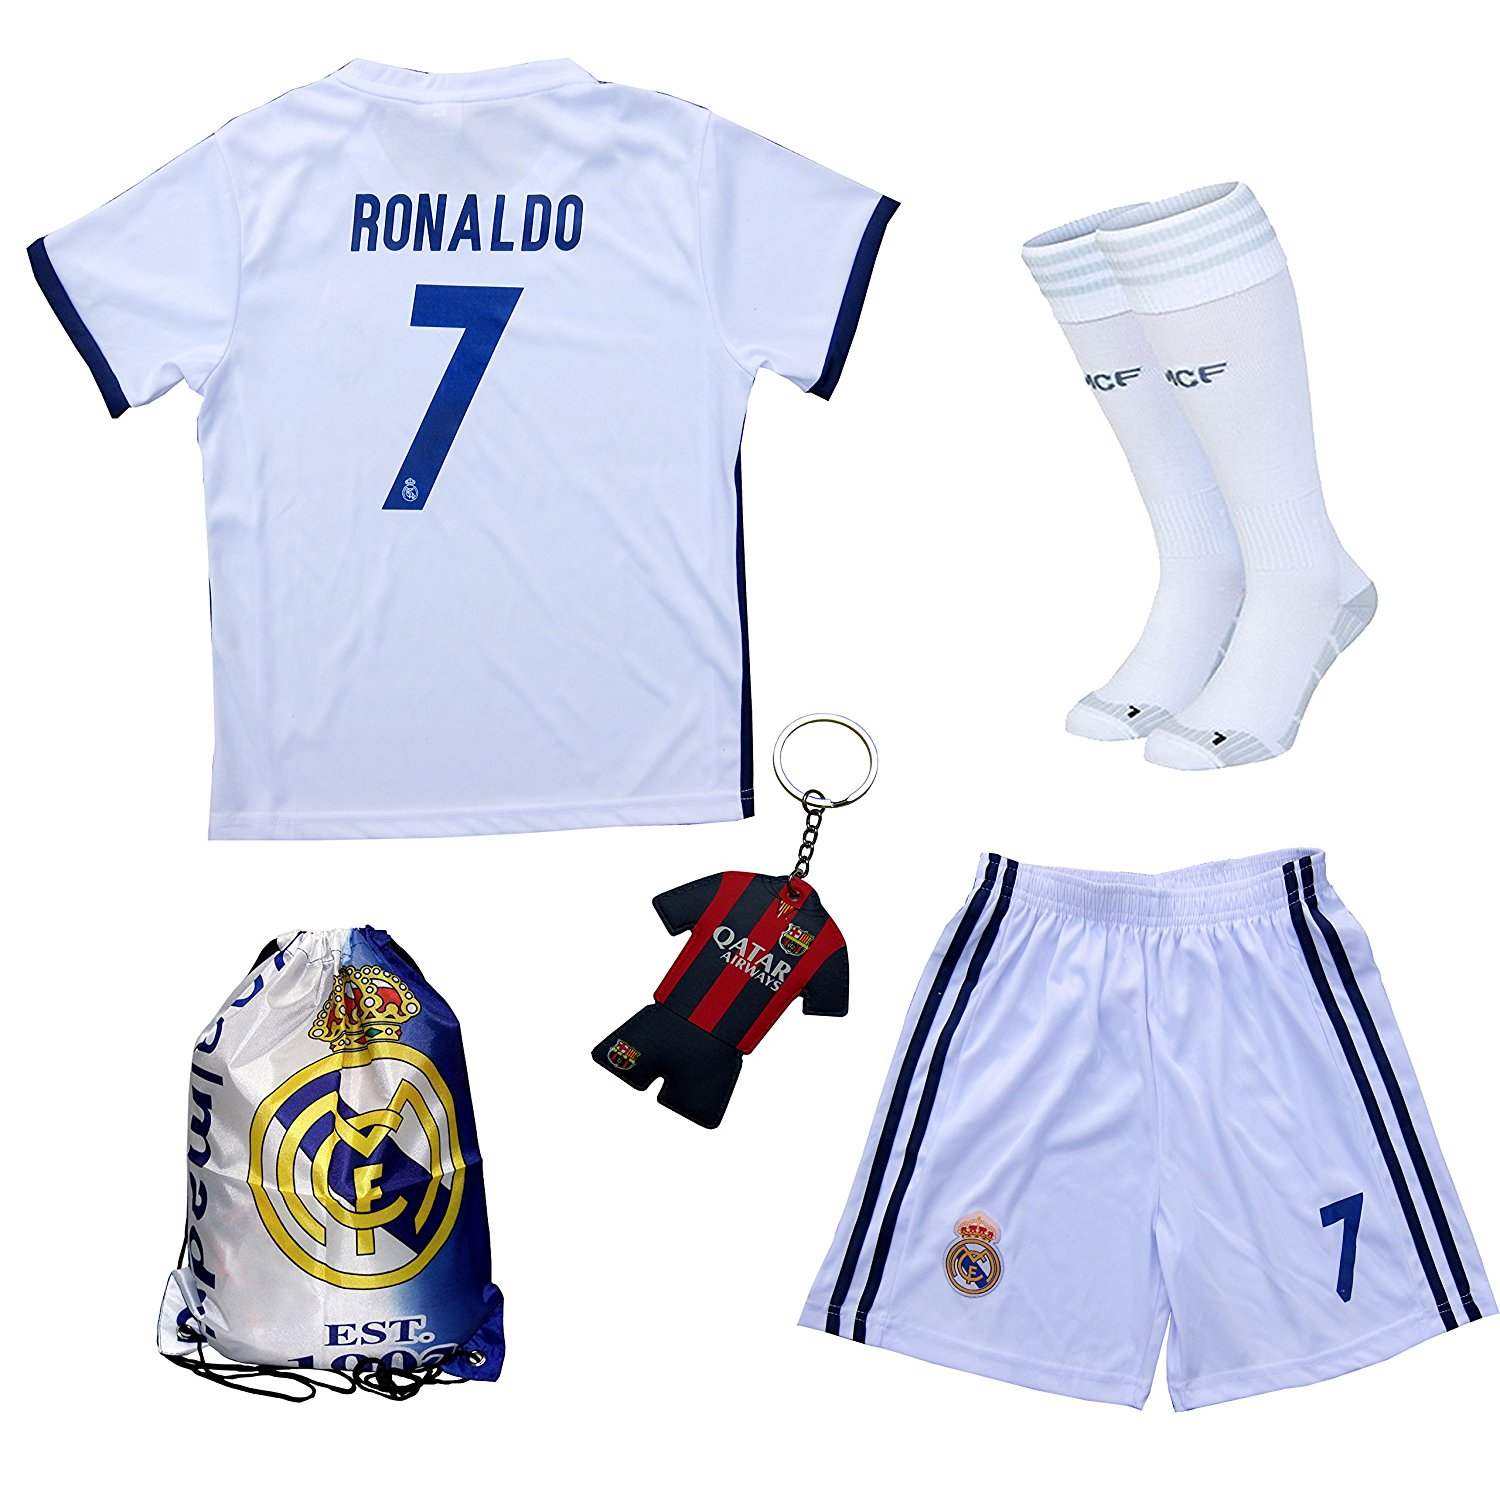 superior quality 843d3 5c63e Buy 2017/2018 Real Madrid Cristiano Ronaldo #7 Home Football ...